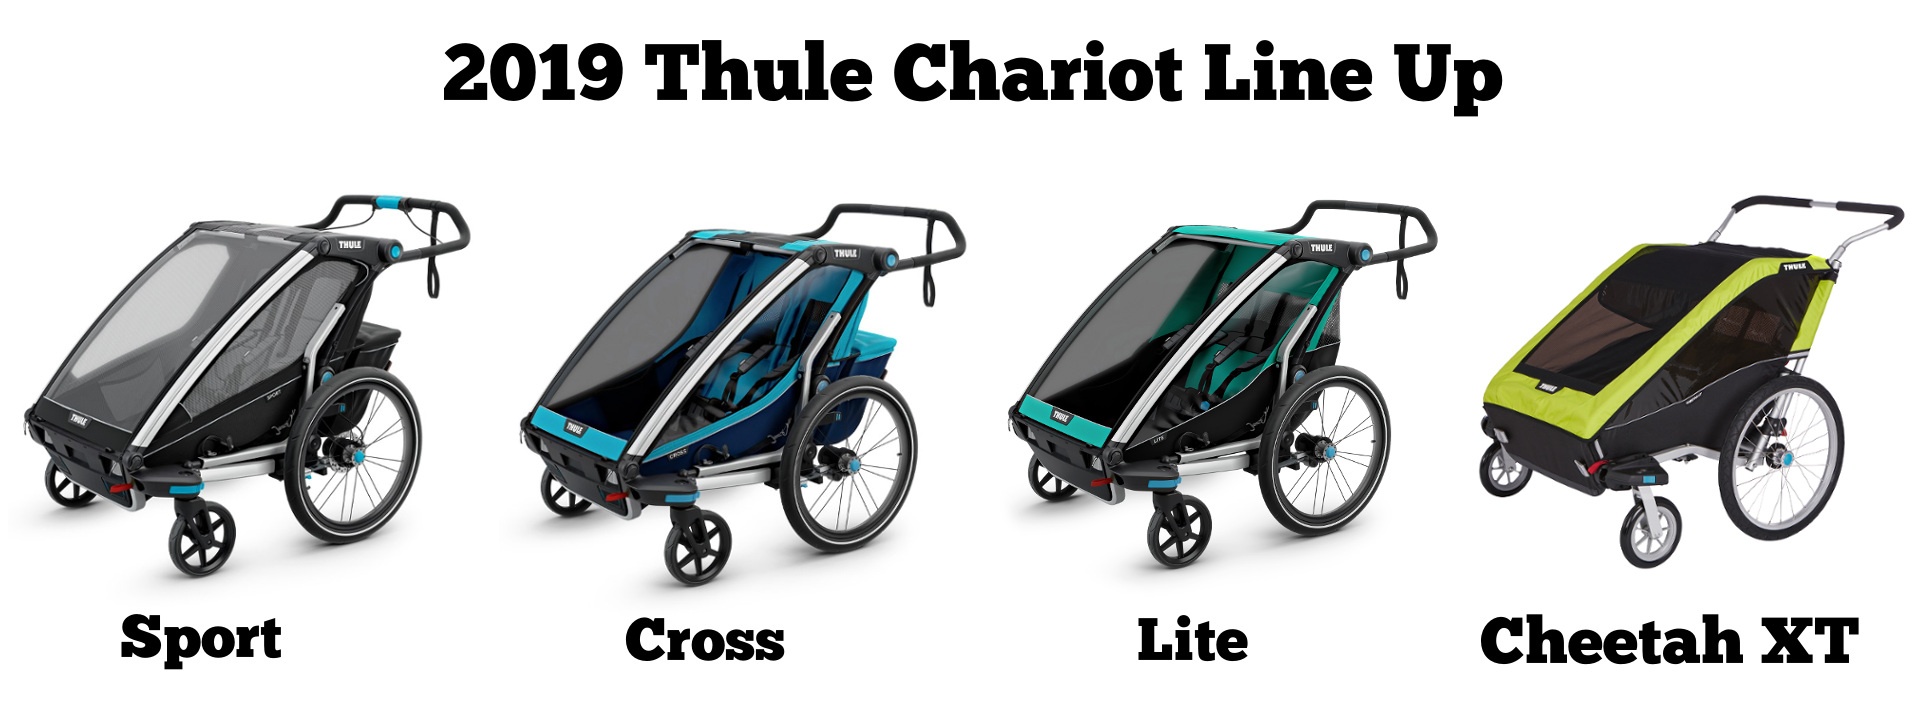 Thule Chariot Line Up - Sport, Cross, Lite, Cheetah XT